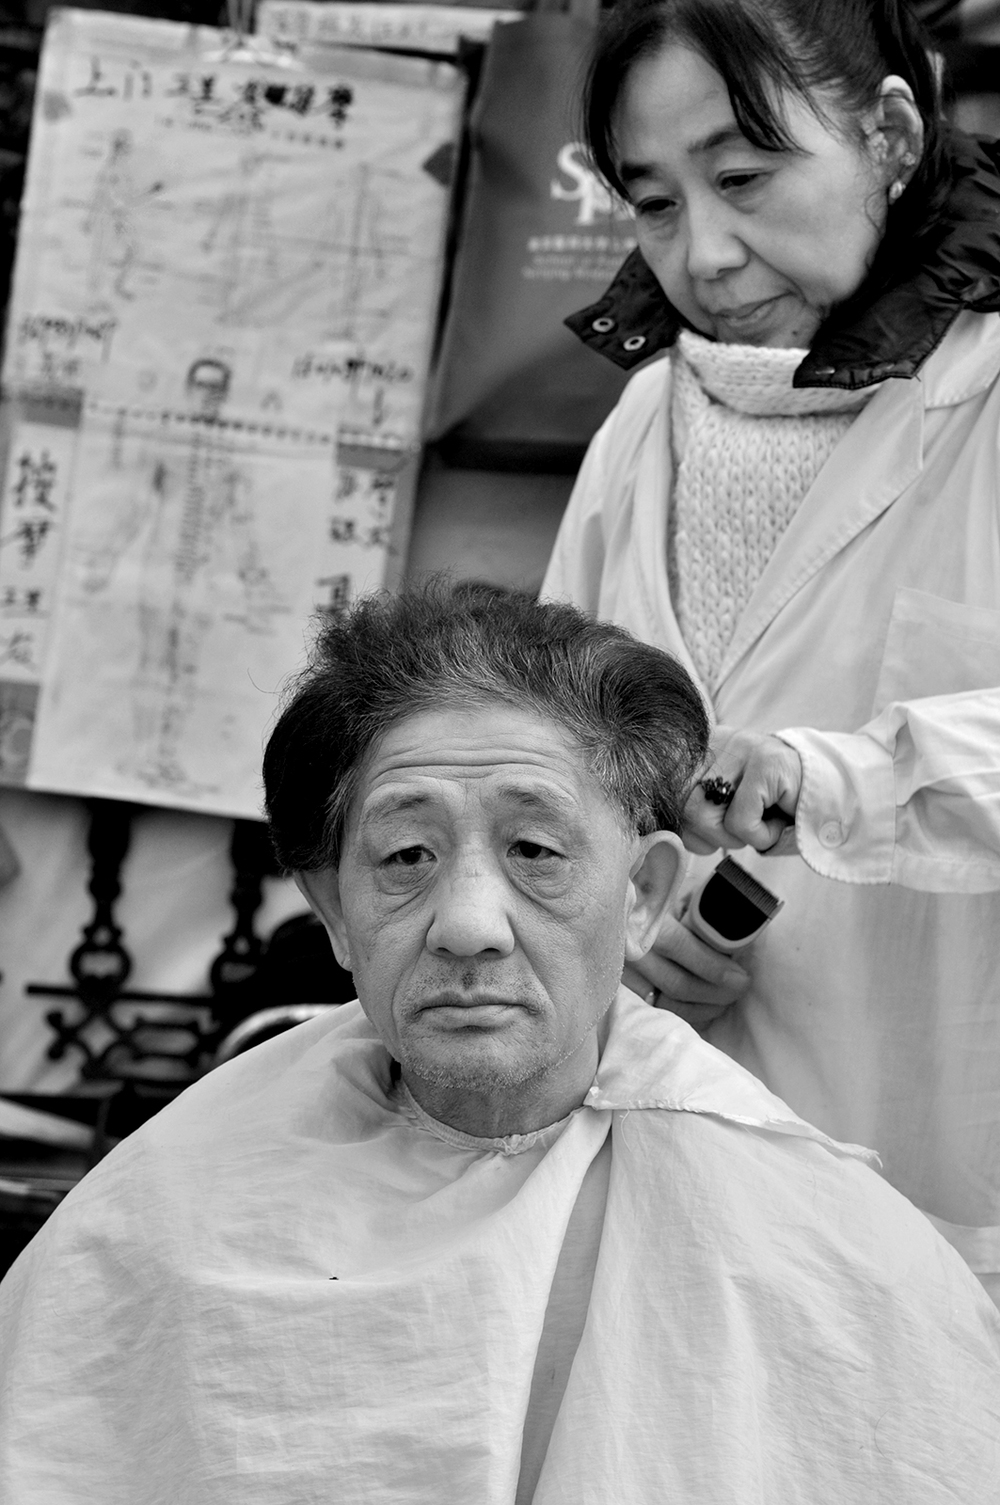 Outdoor haircut, Beijing